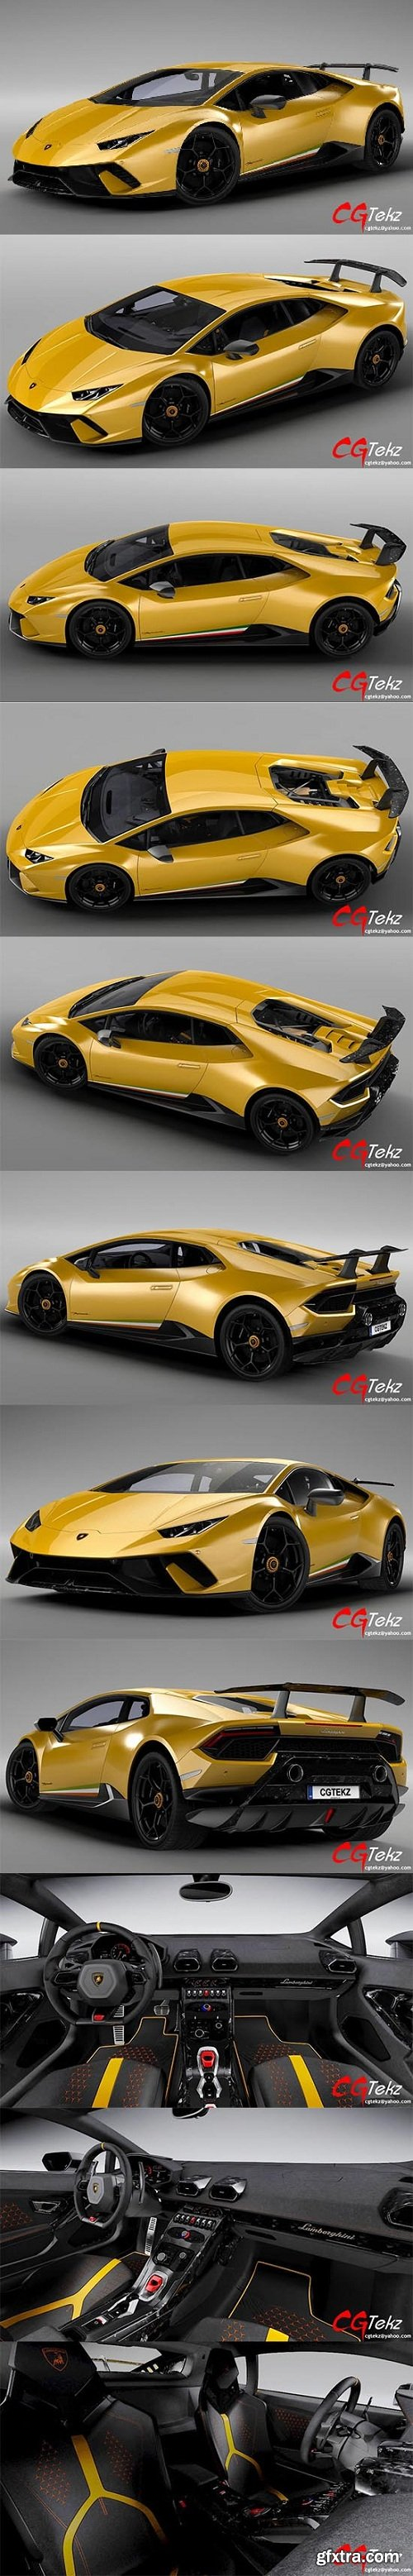 Lamborghini Huracan Performante LP 640-4 2017